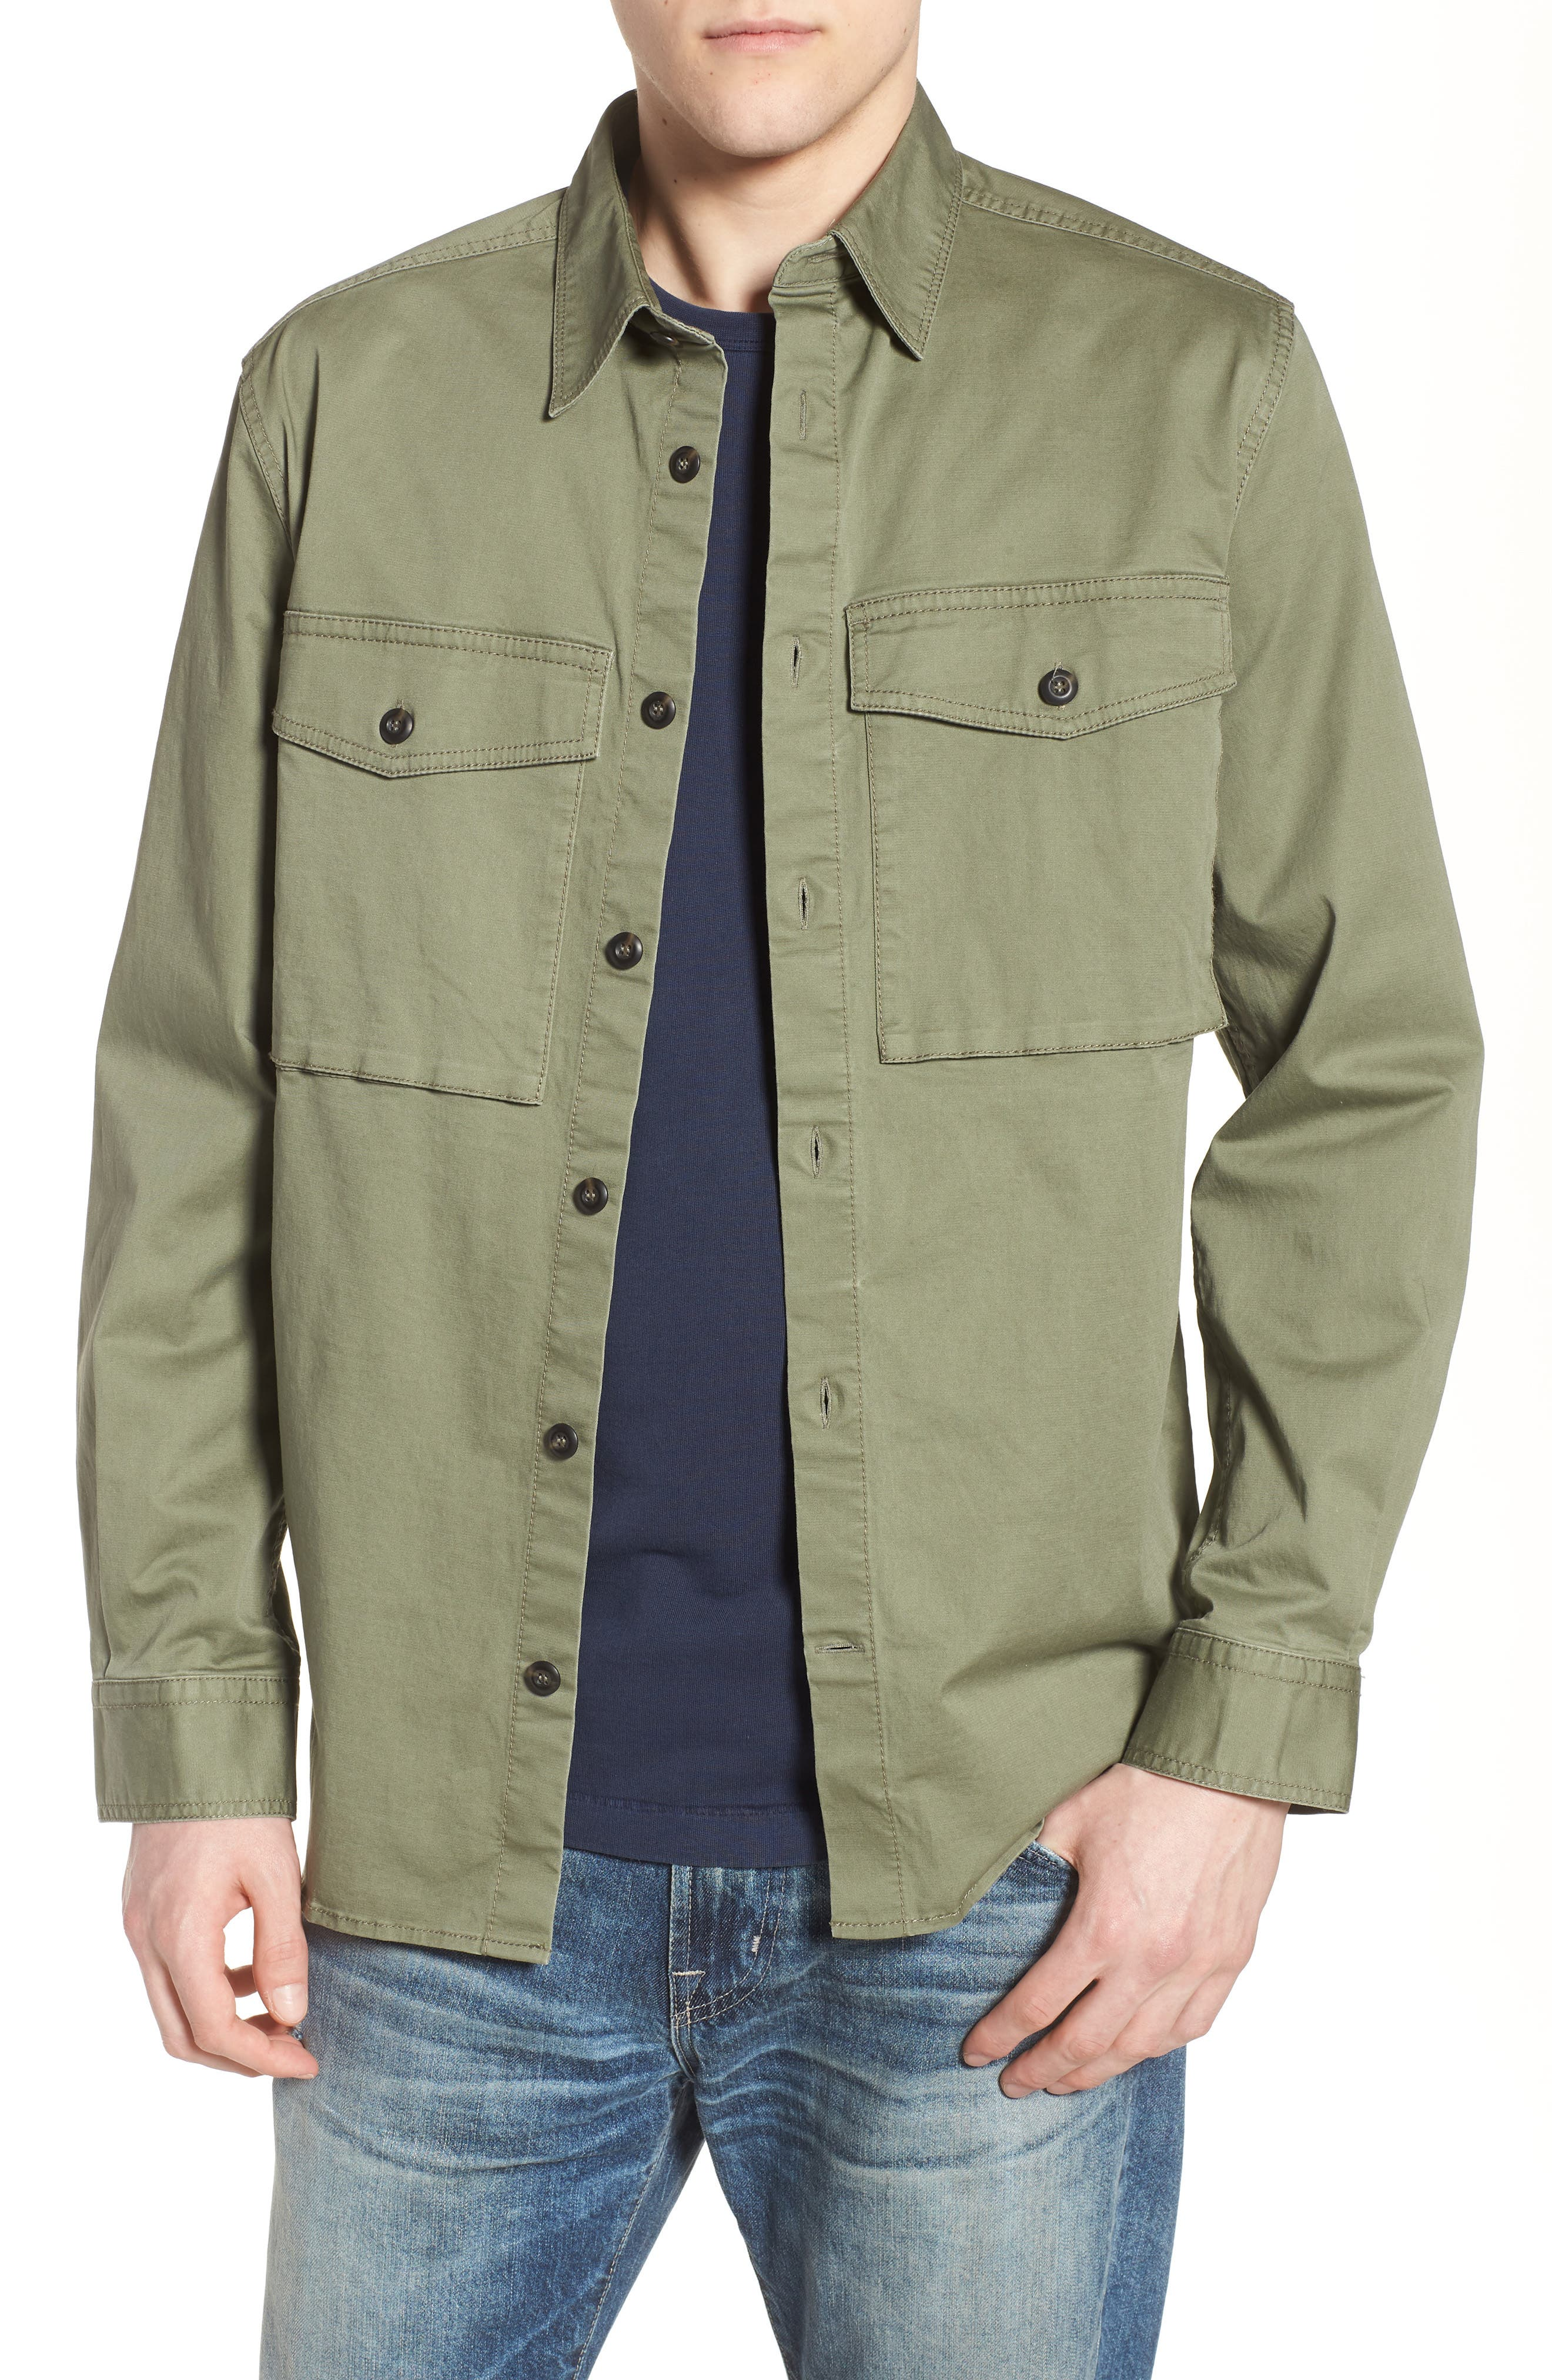 FRENCH CONNECTION Twill Military Shirt Jacket, Main, color, 300